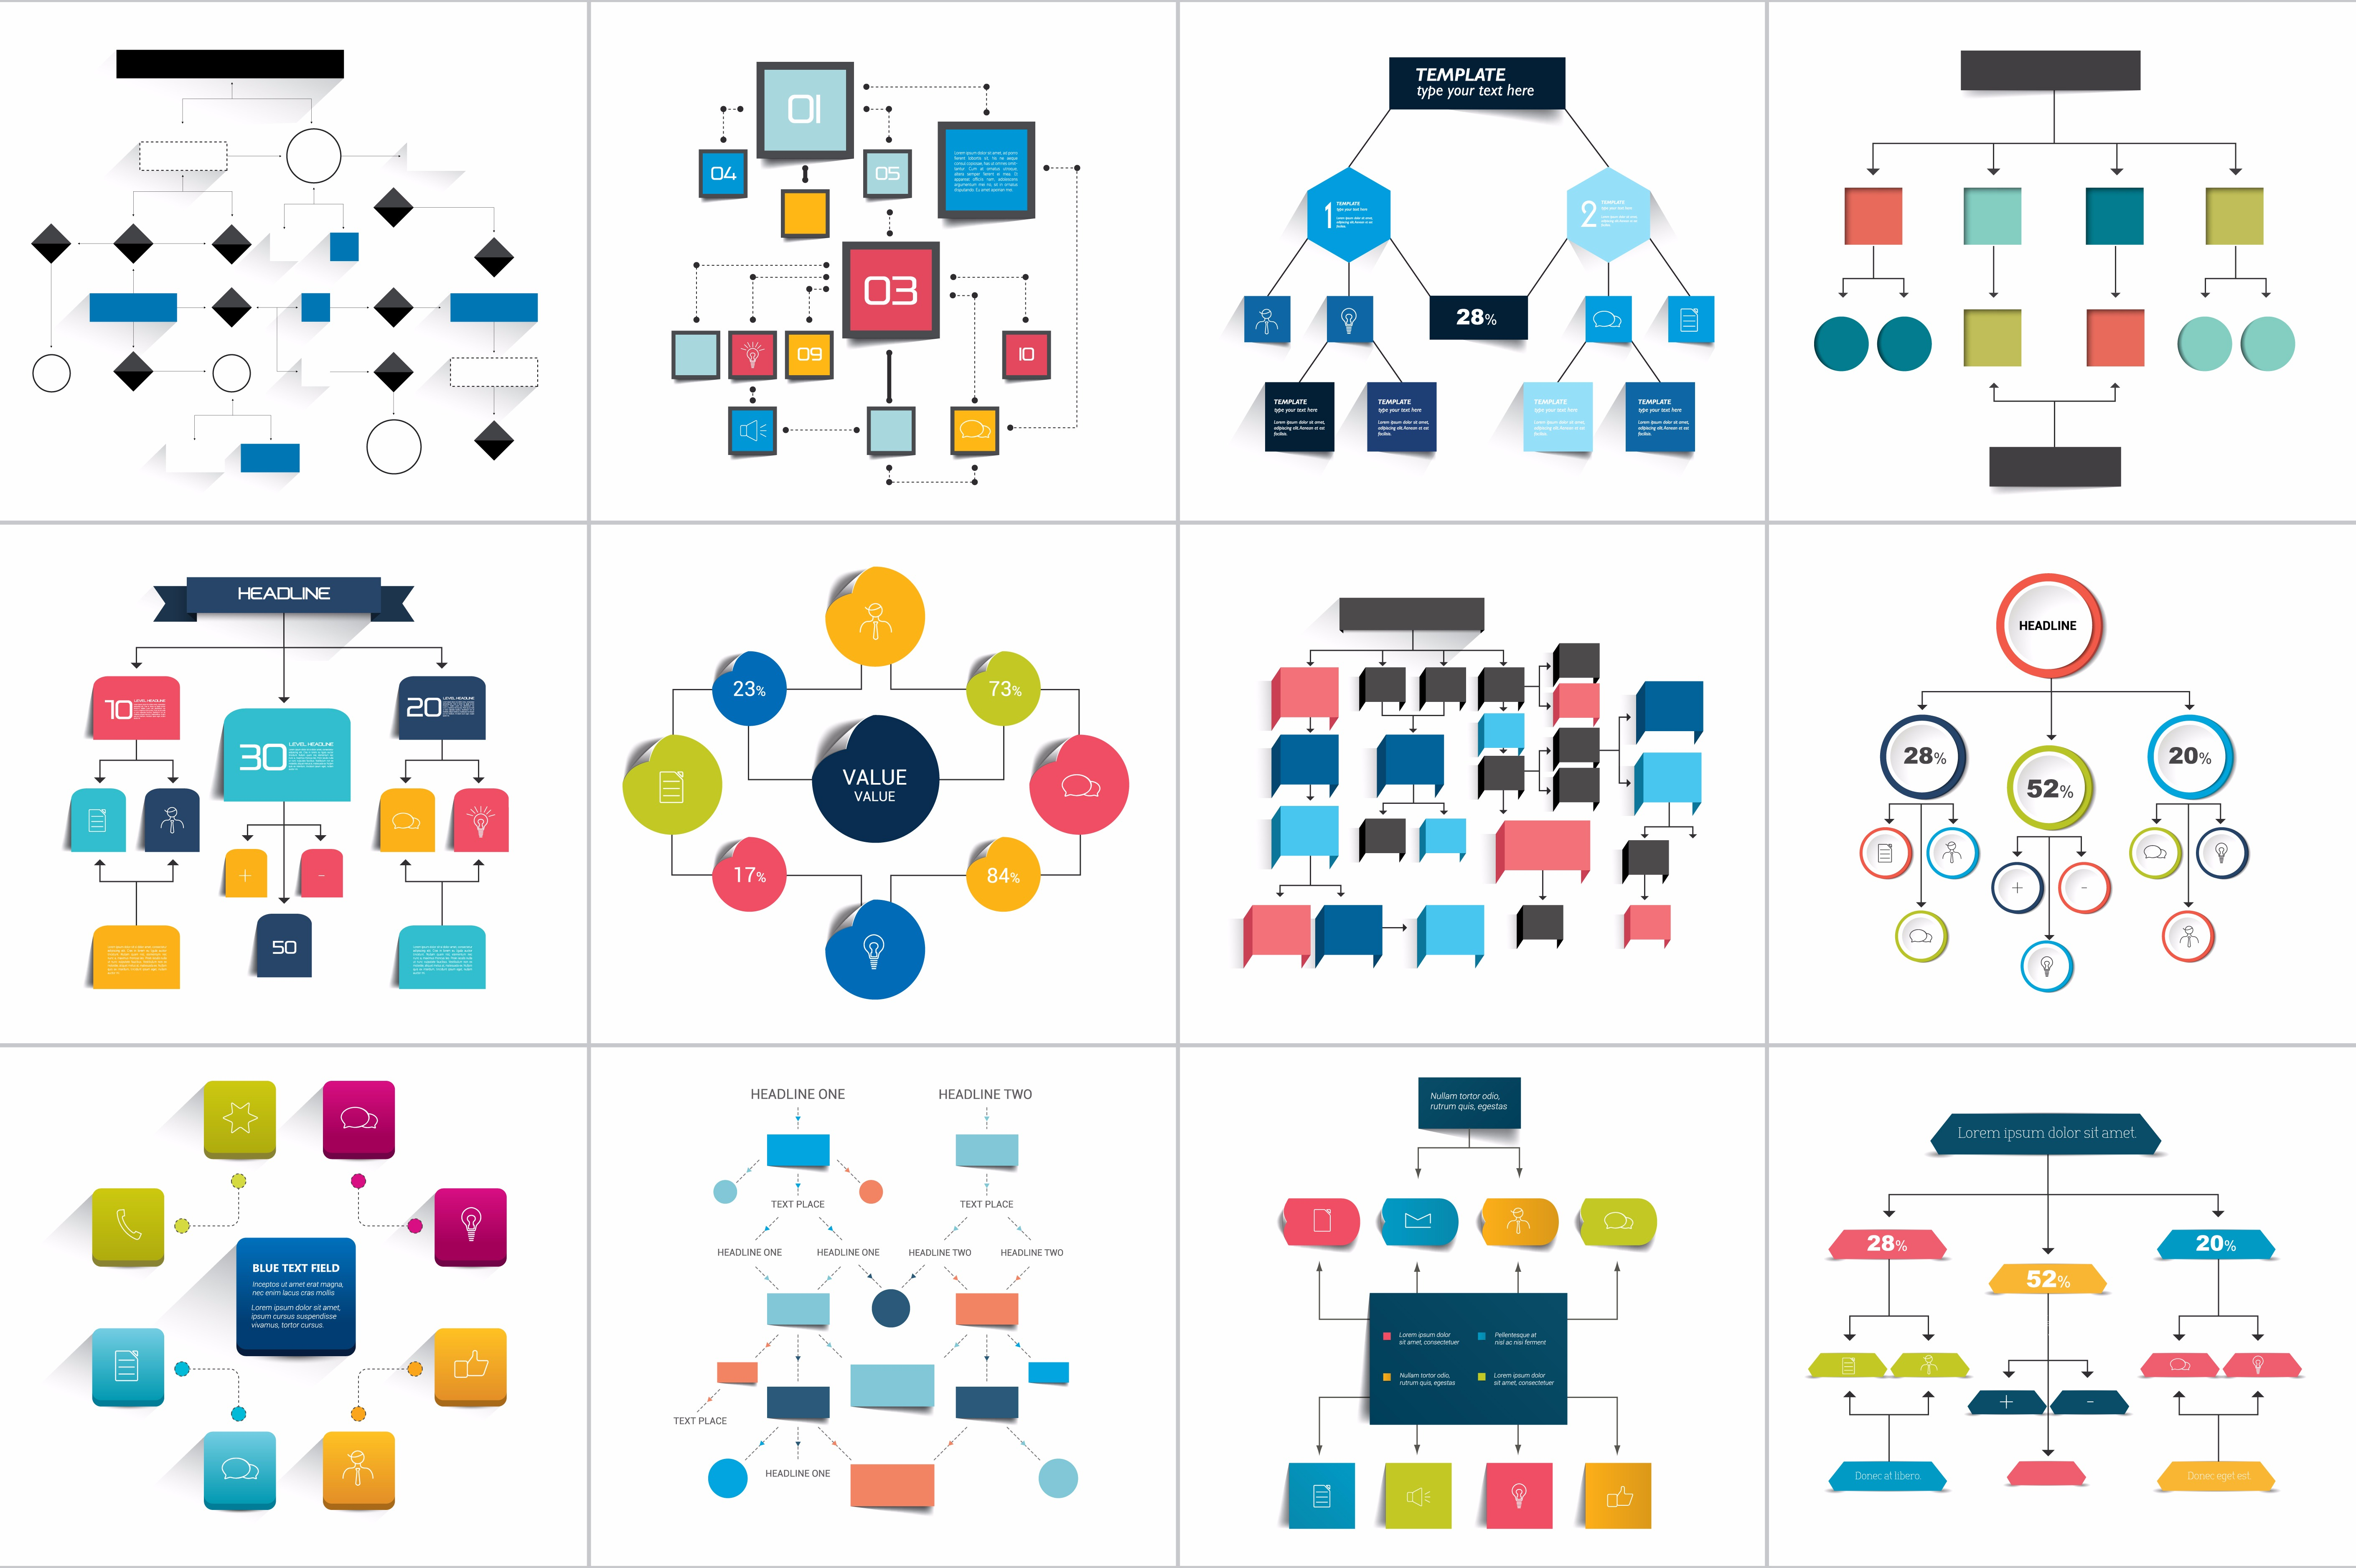 Adobe Forms|Fillable PDF | Visio|Flow Charts